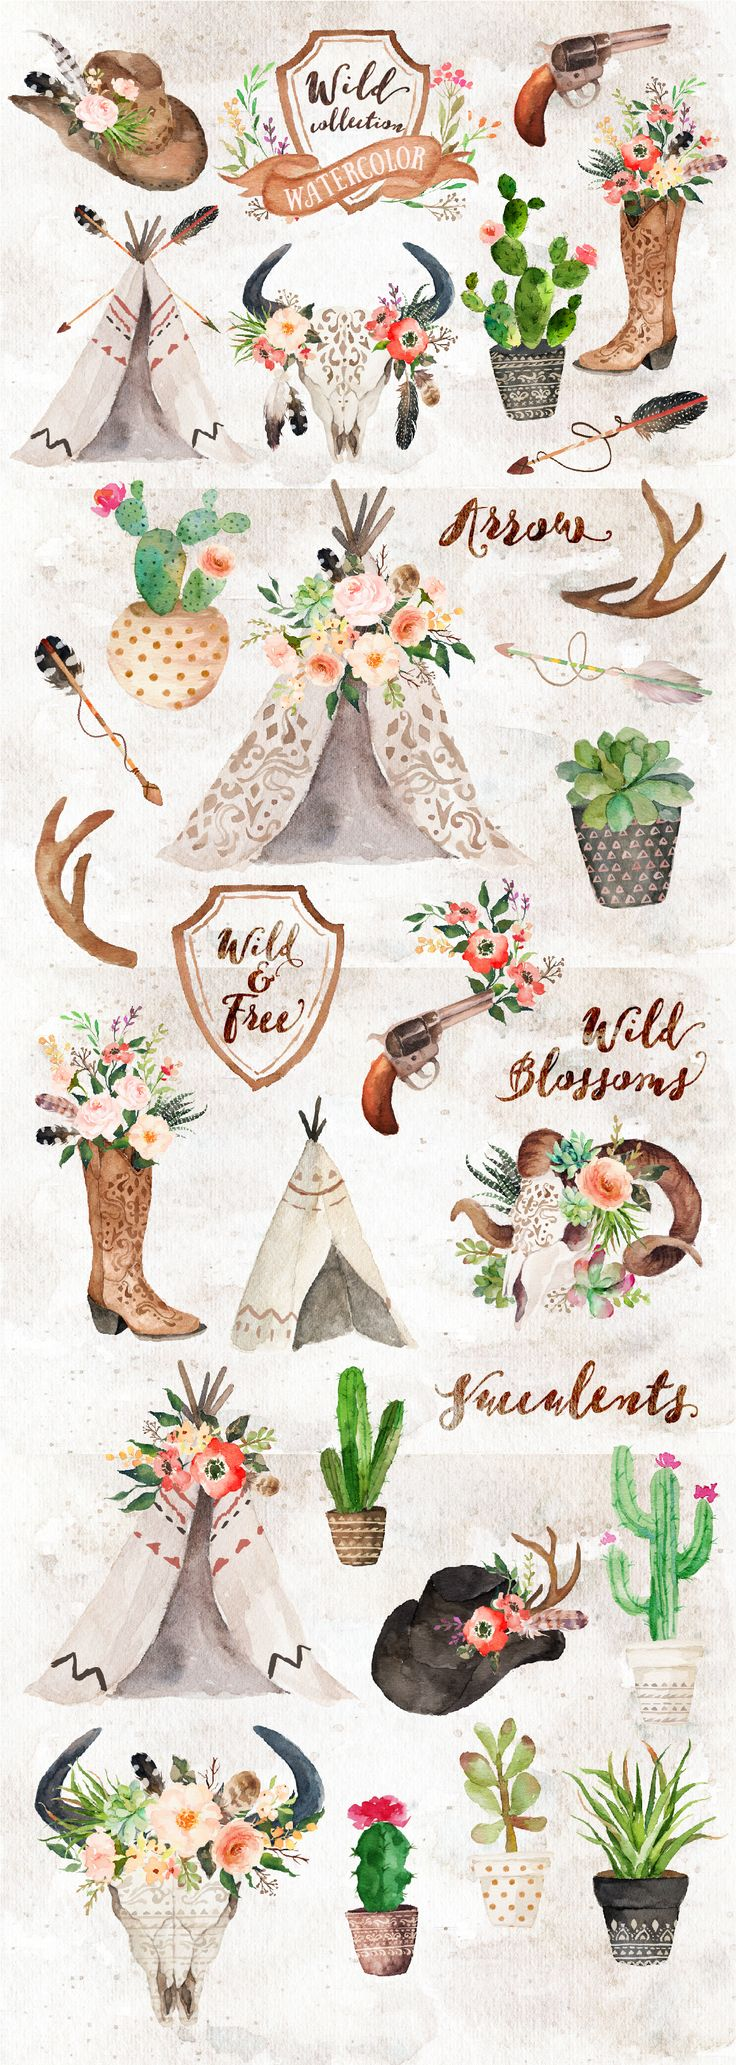 1000+ images about Watercolors ❀ on Pinterest.